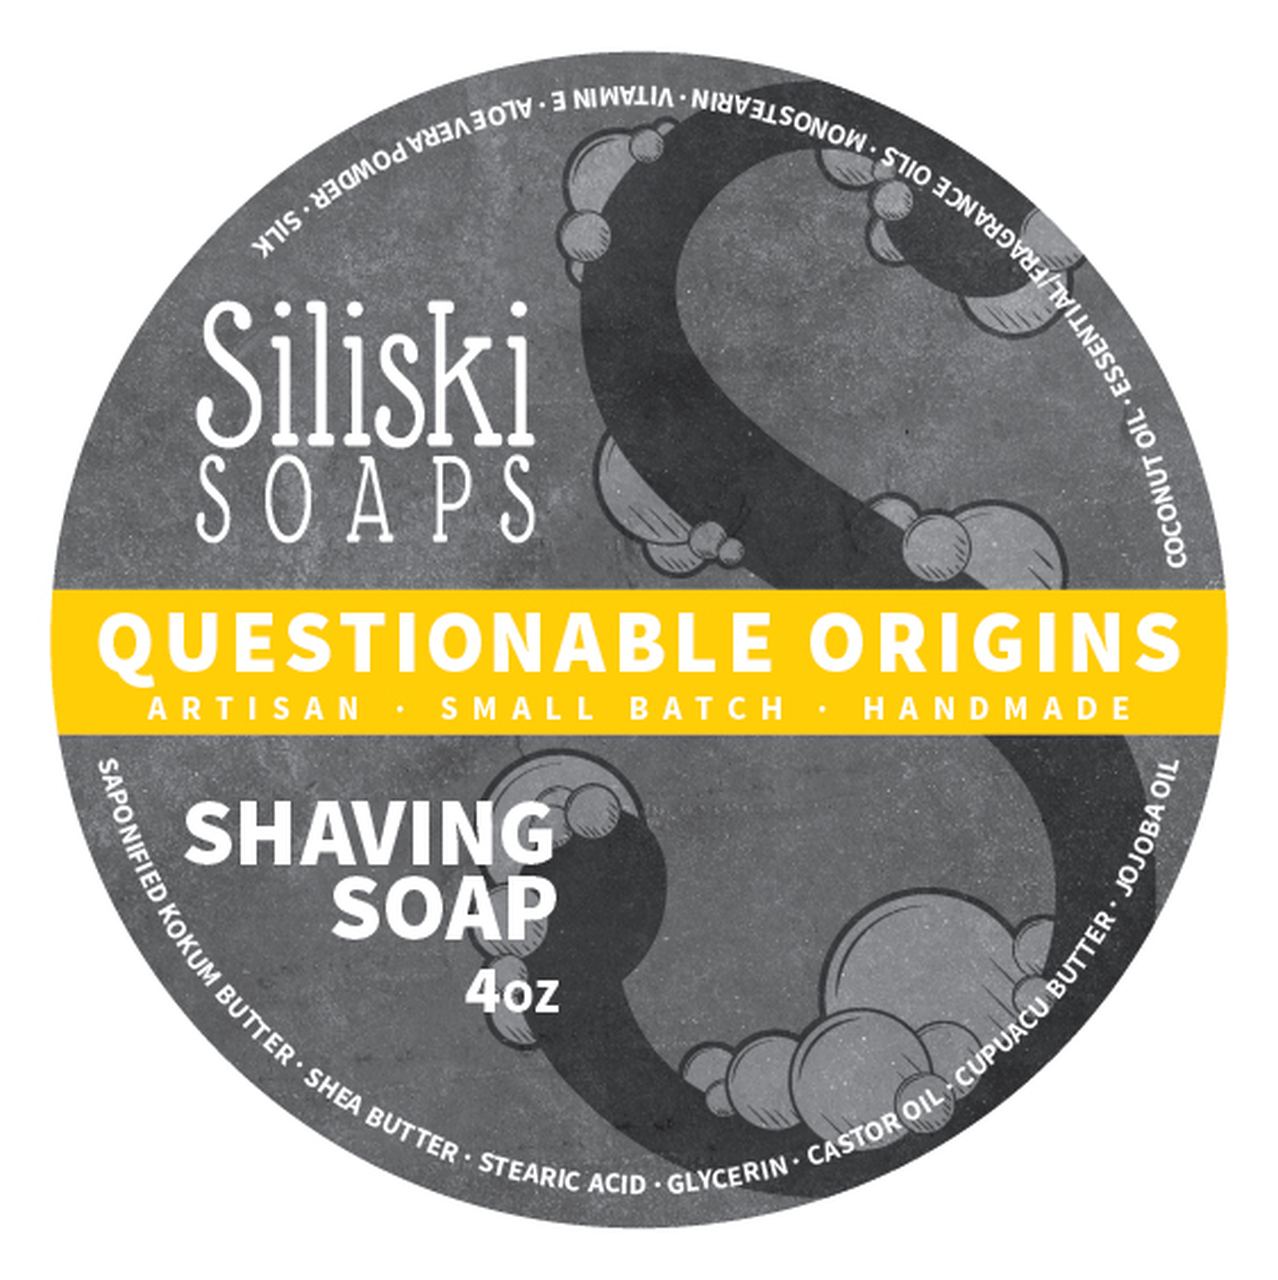 Siliski Soaps - Questionable Origins - Soap image